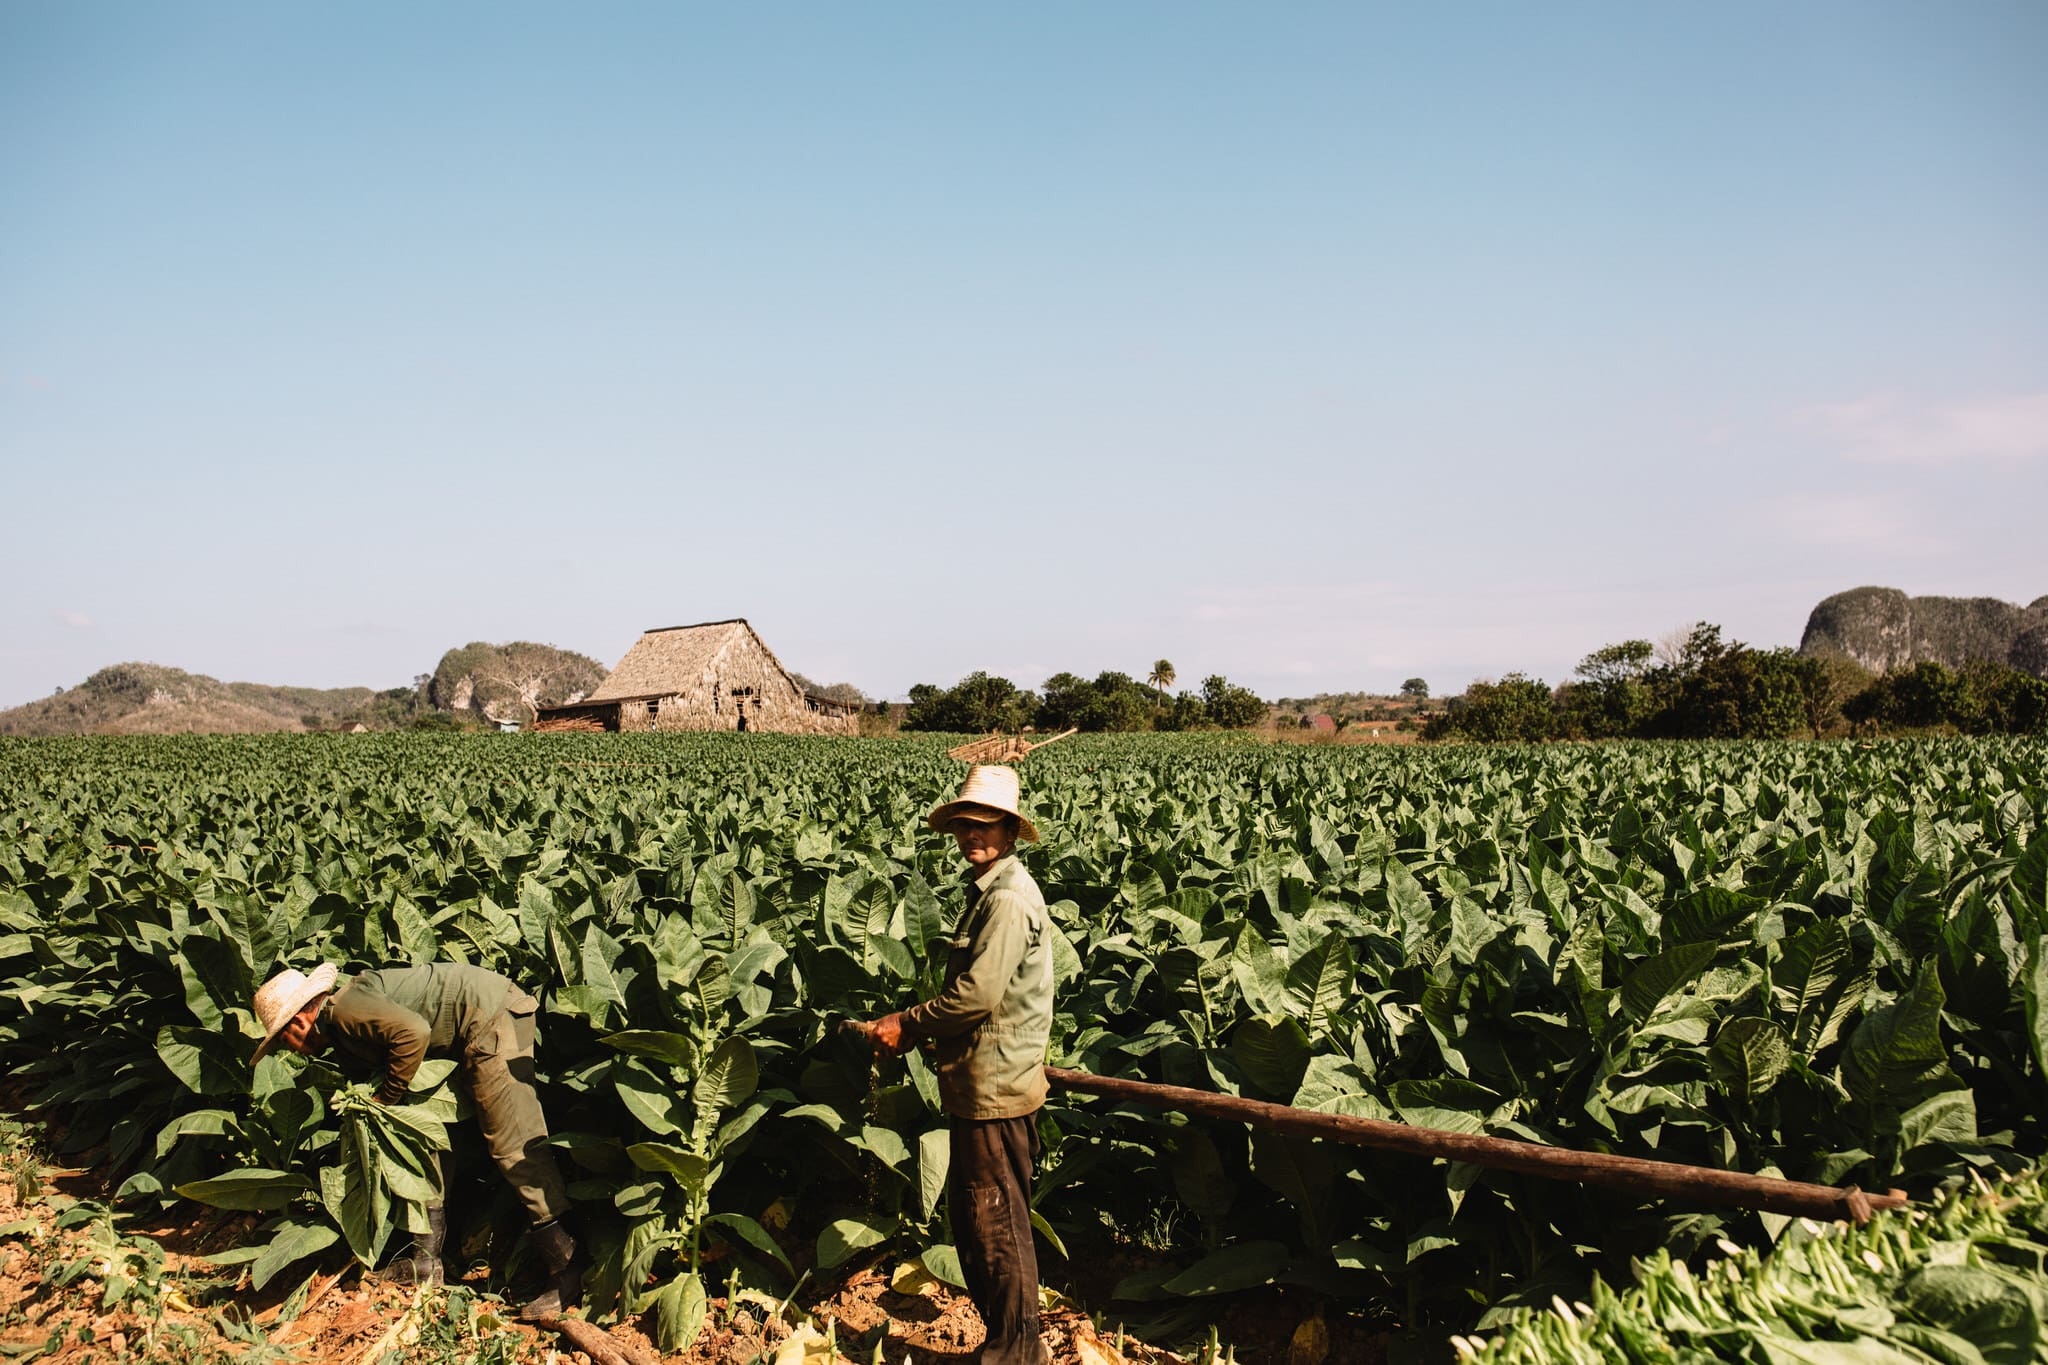 Tobacco farmers processing fresh tobacco on a Cuban cigar farm in Vinales, Cuba. Wedding and travel photographer Brent Calis.